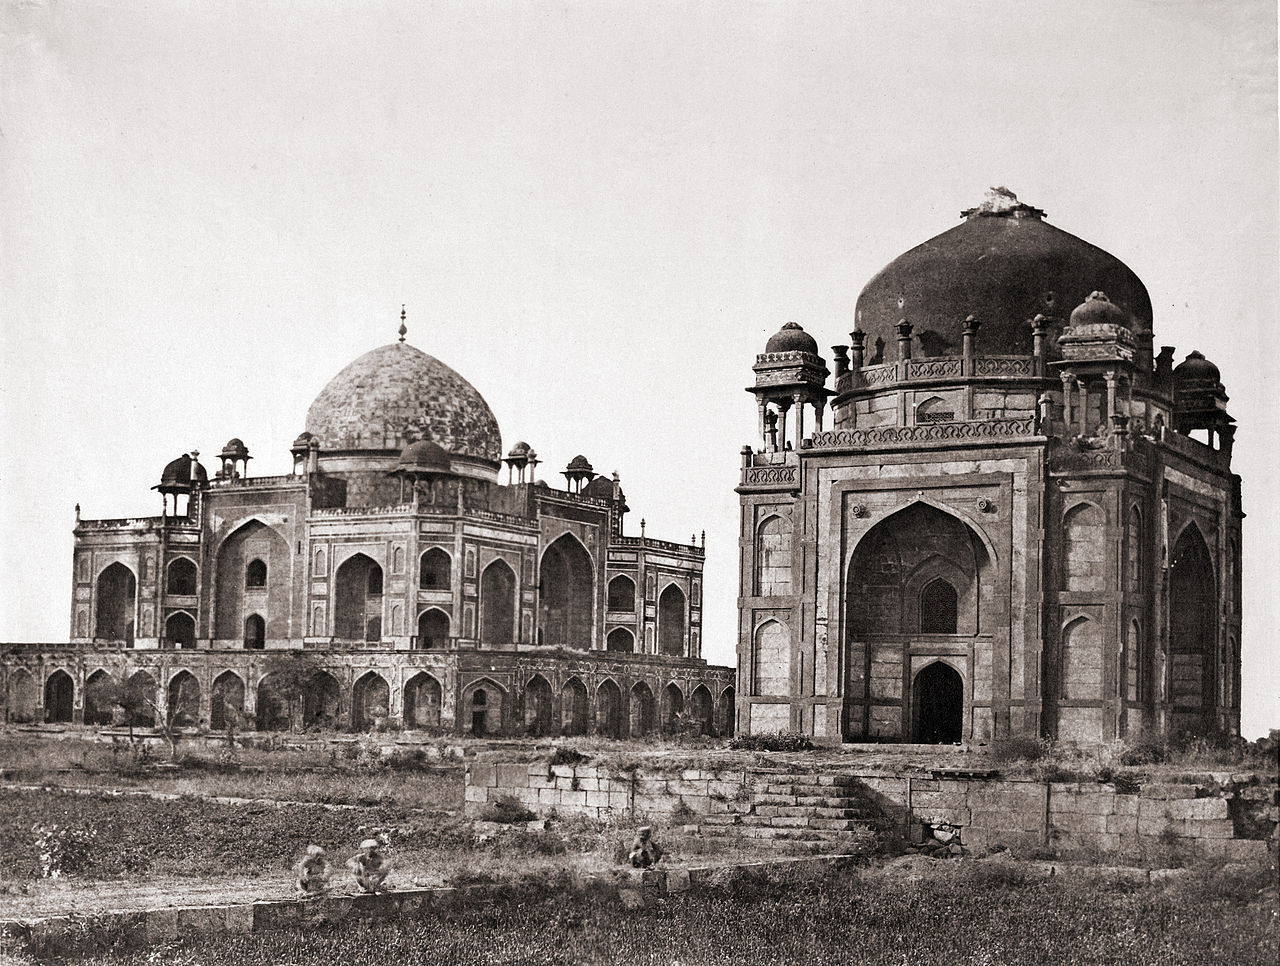 1280px-Humayun's_Tomb,_with_the_Barber's_Tomb_in_the_foreground,_Delhi,_1858_photograph.jpg